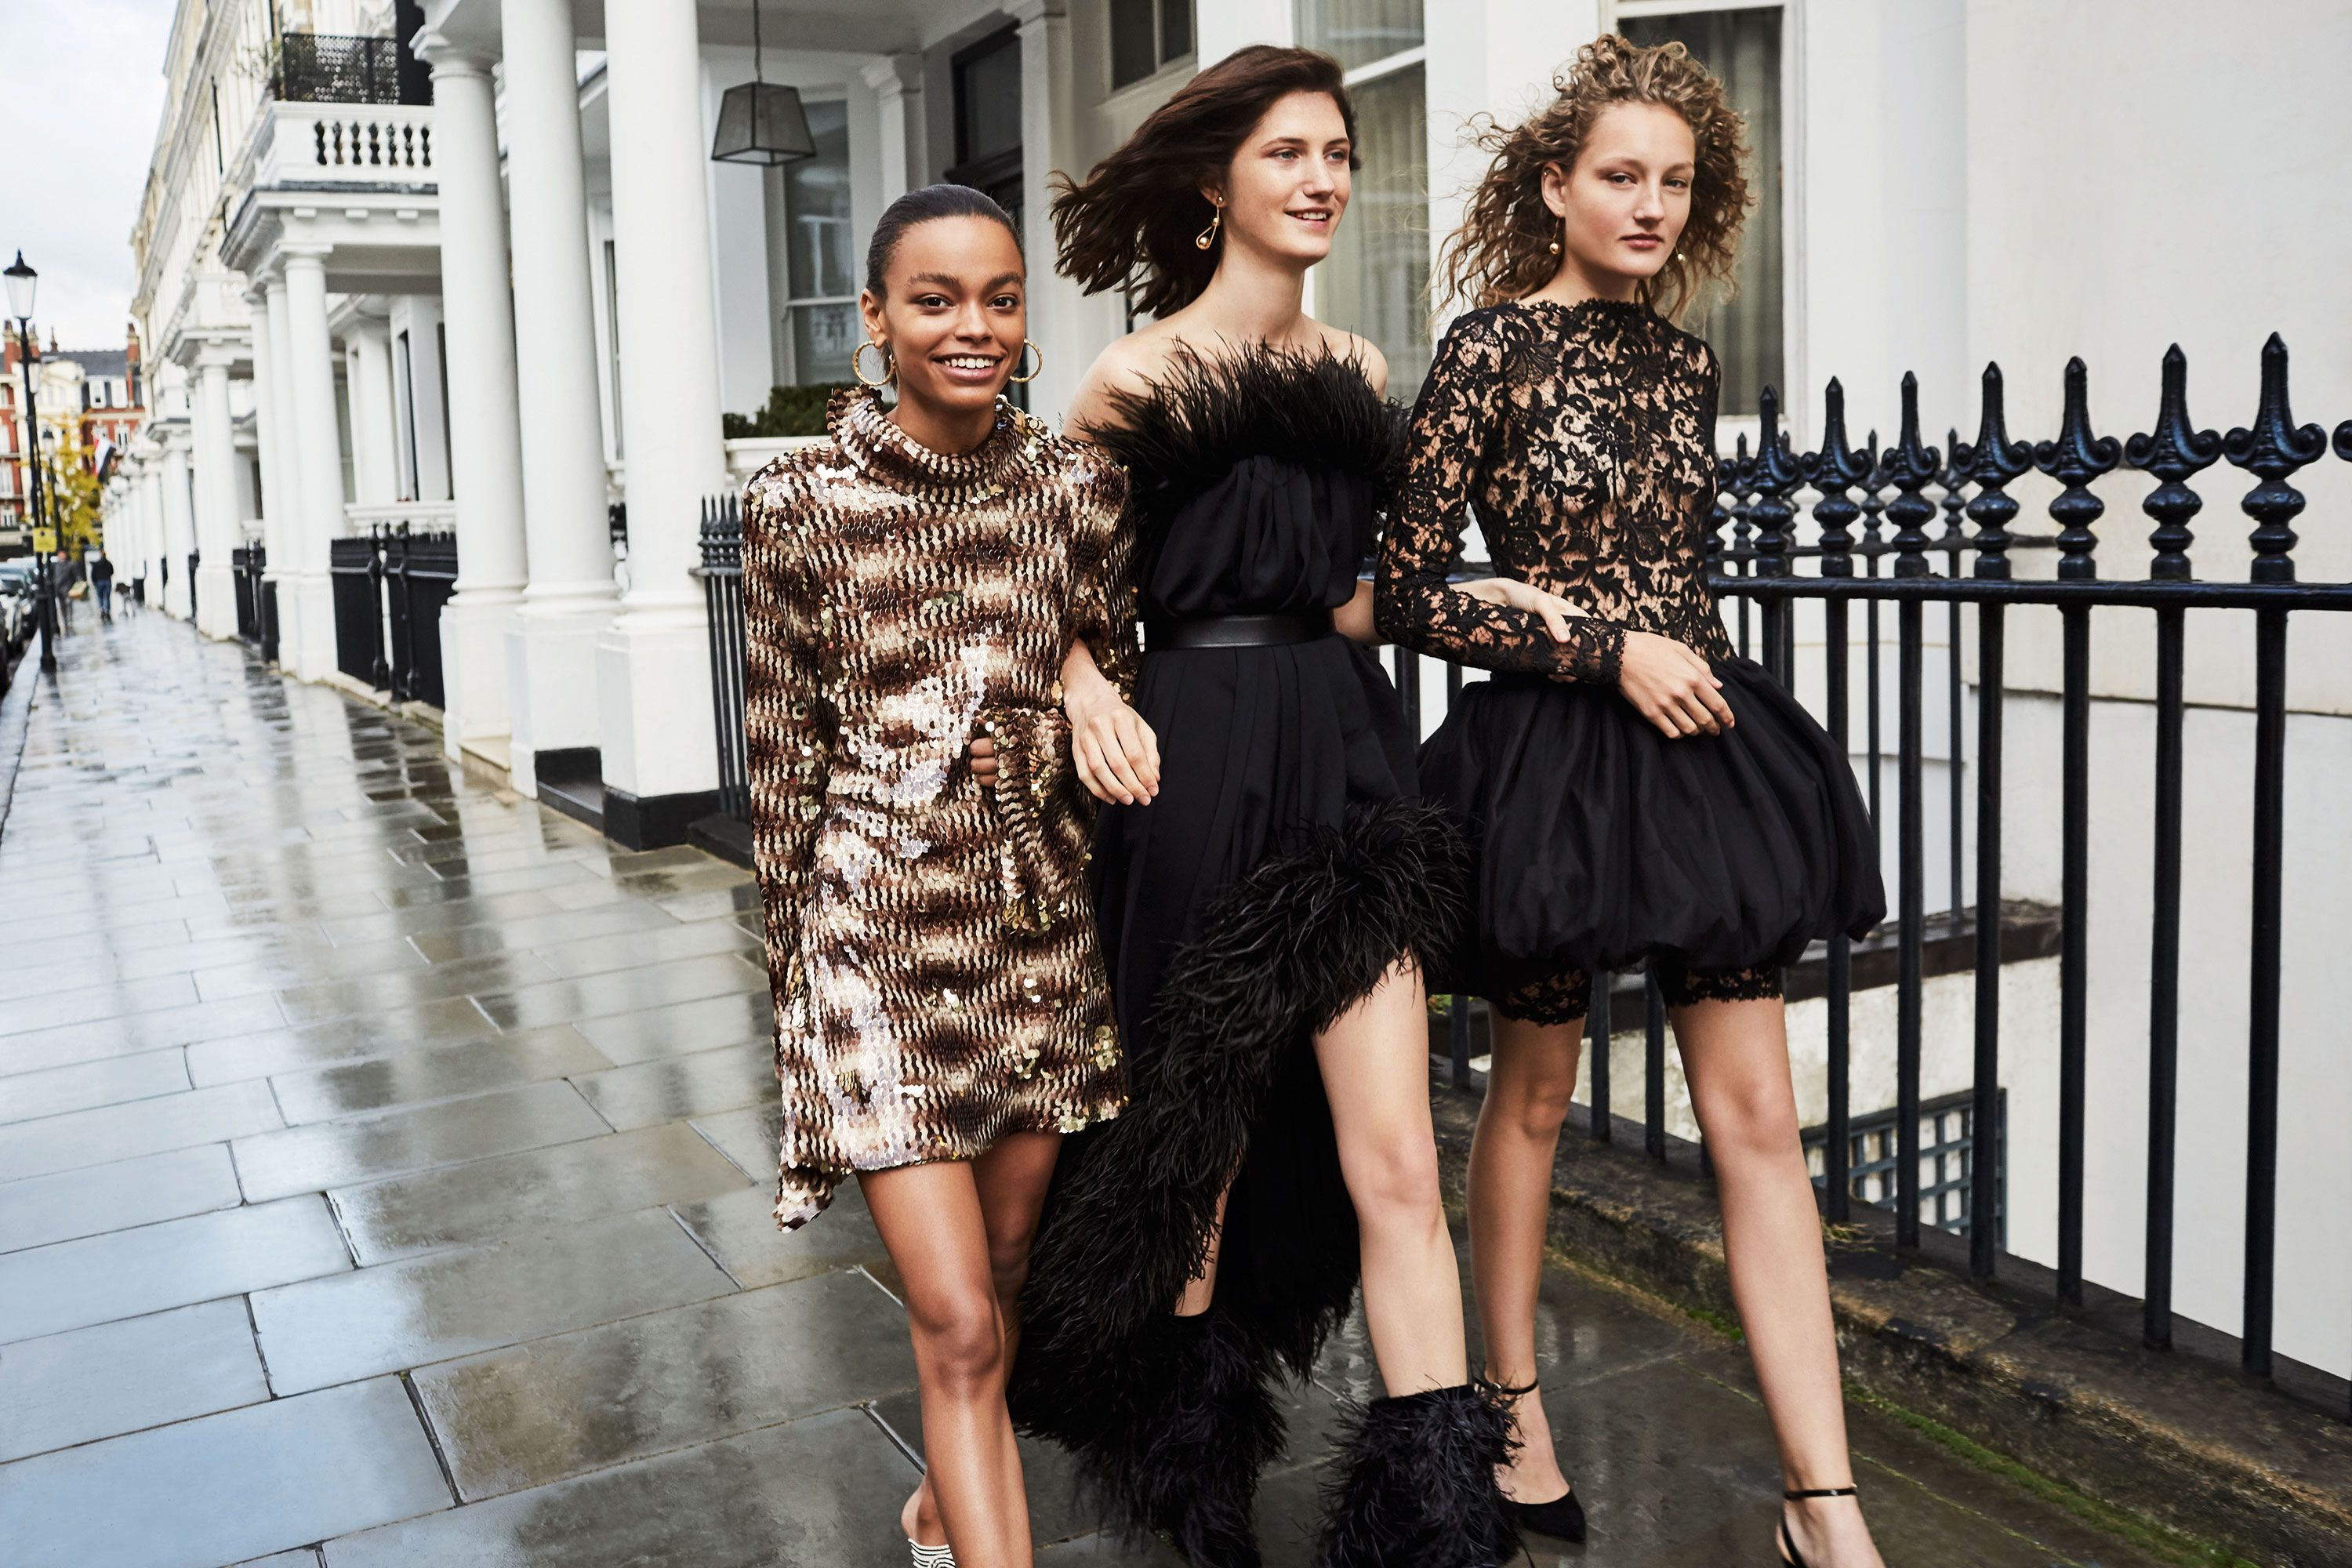 What to wear to a summer wedding - wedding guest style ideas 38ee92348cea9